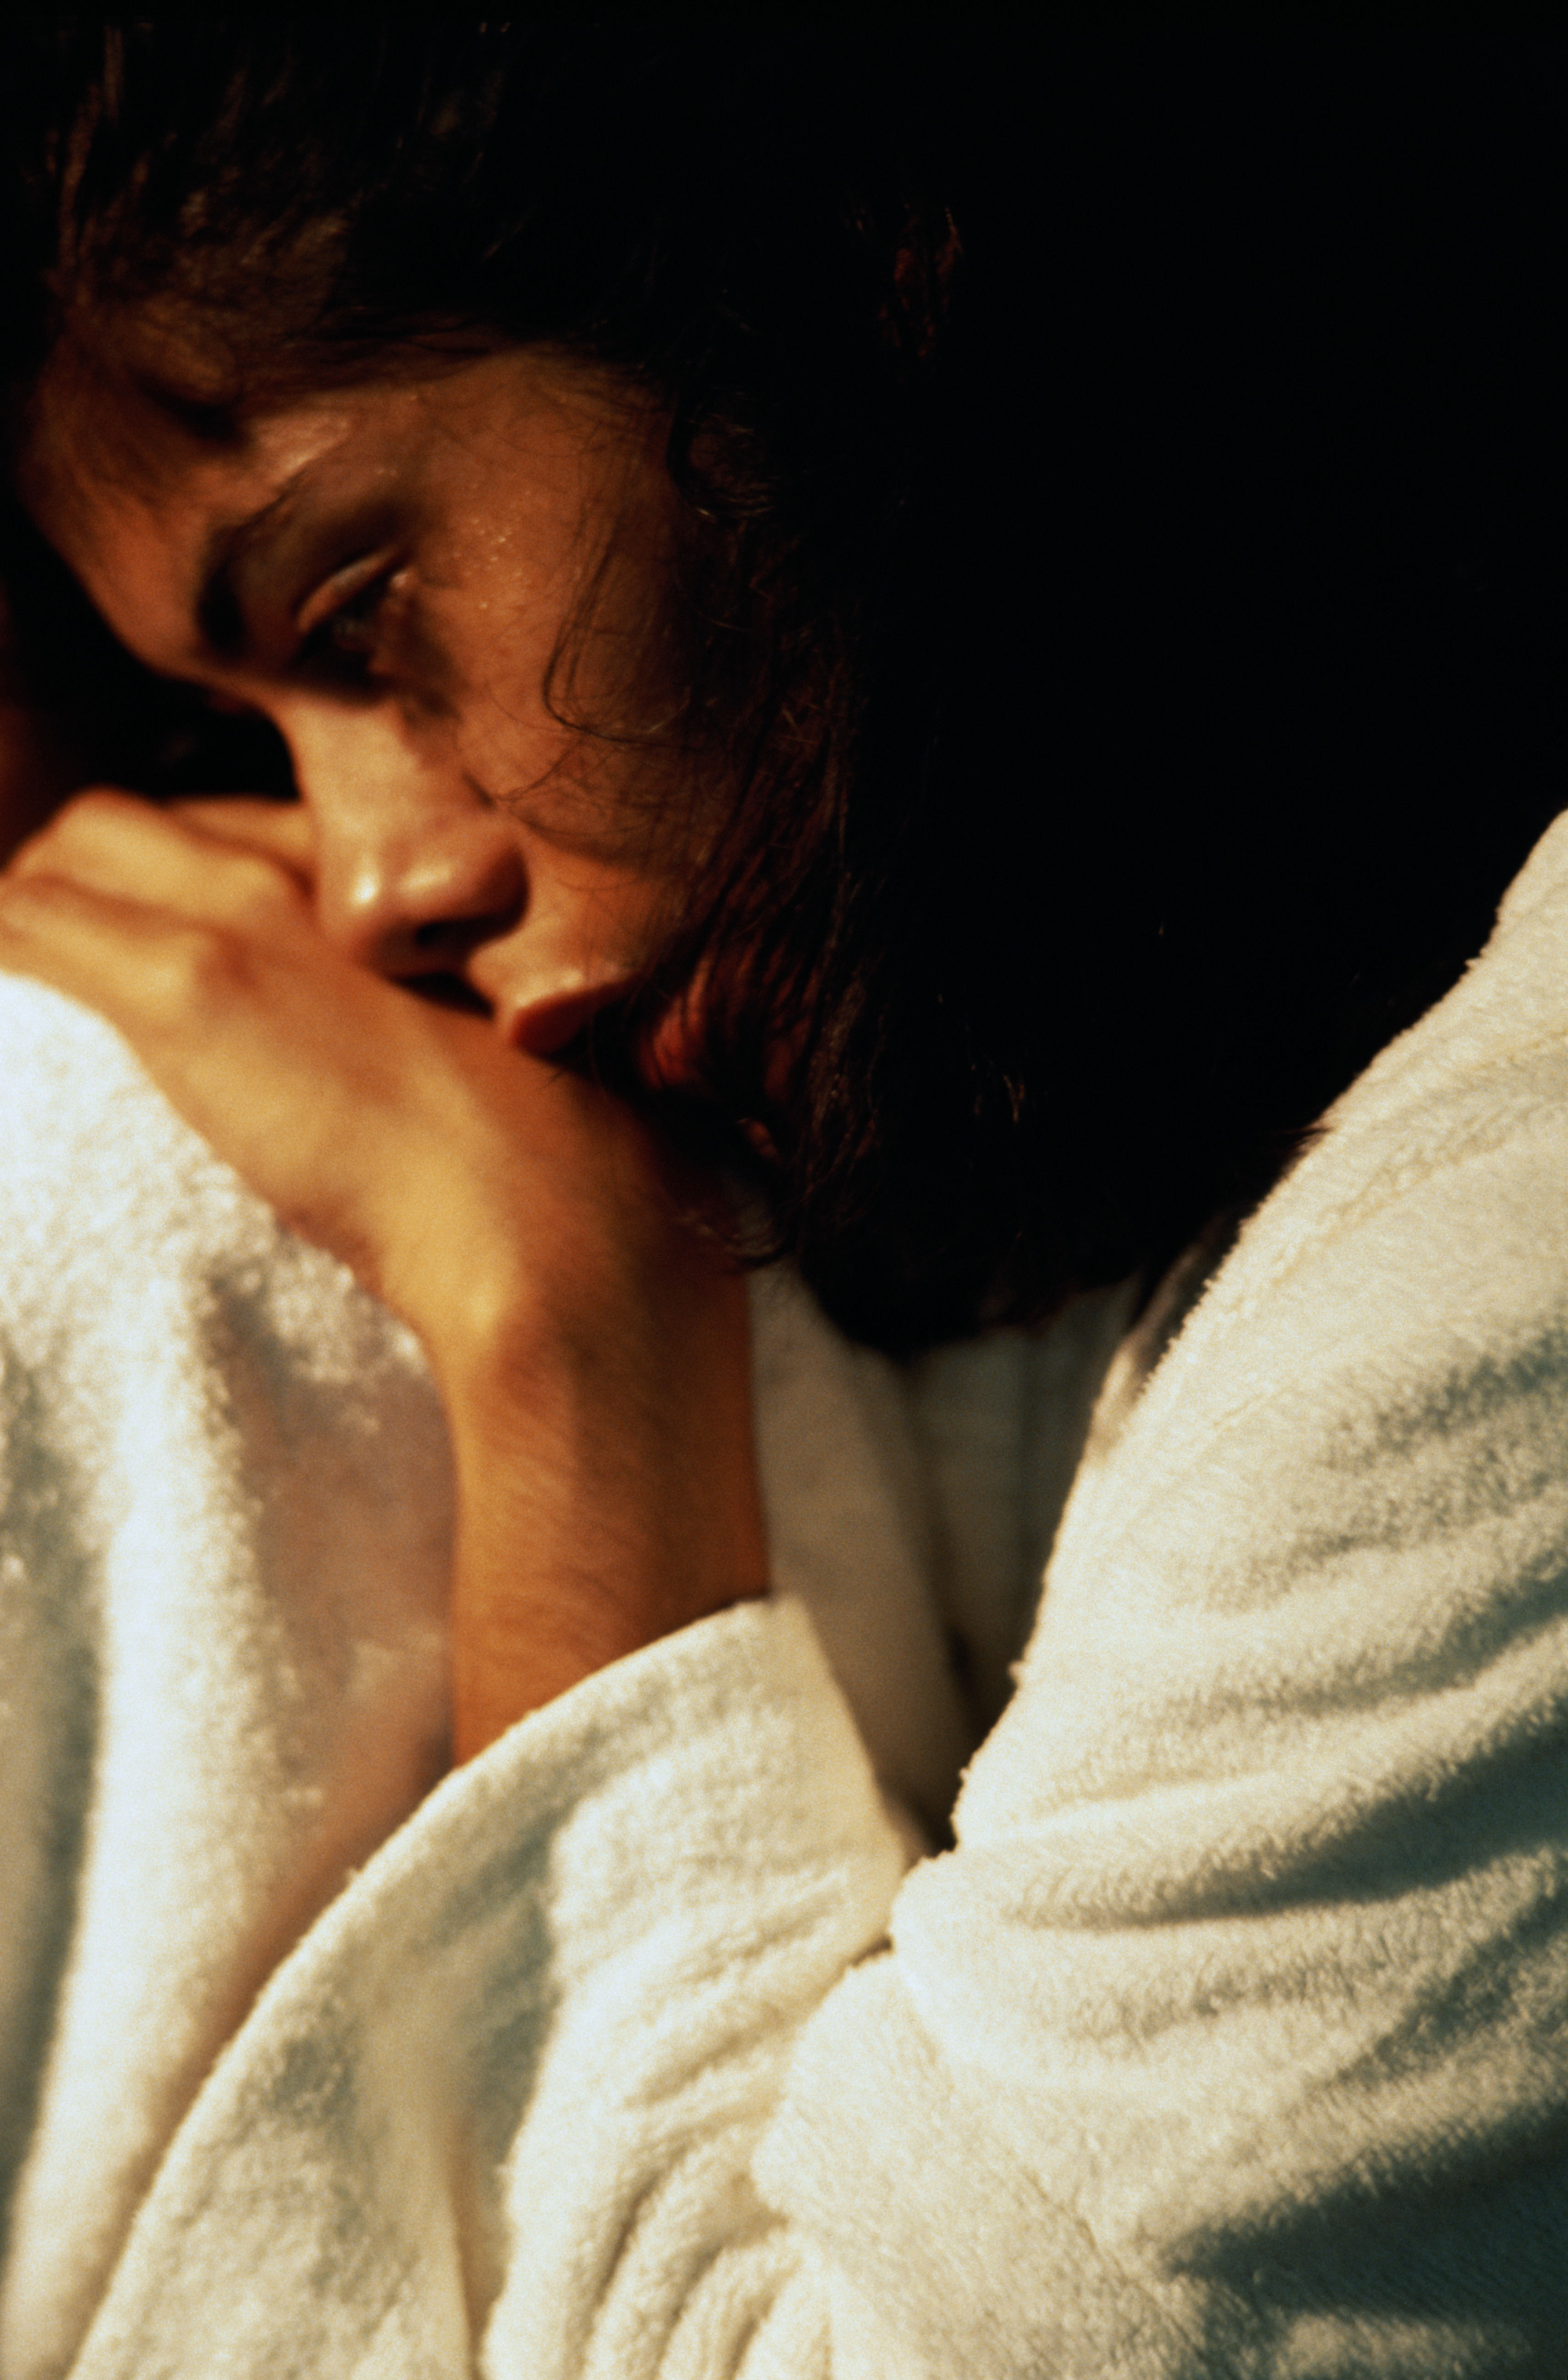 Woman in white bathrobe curled up and looking pensive